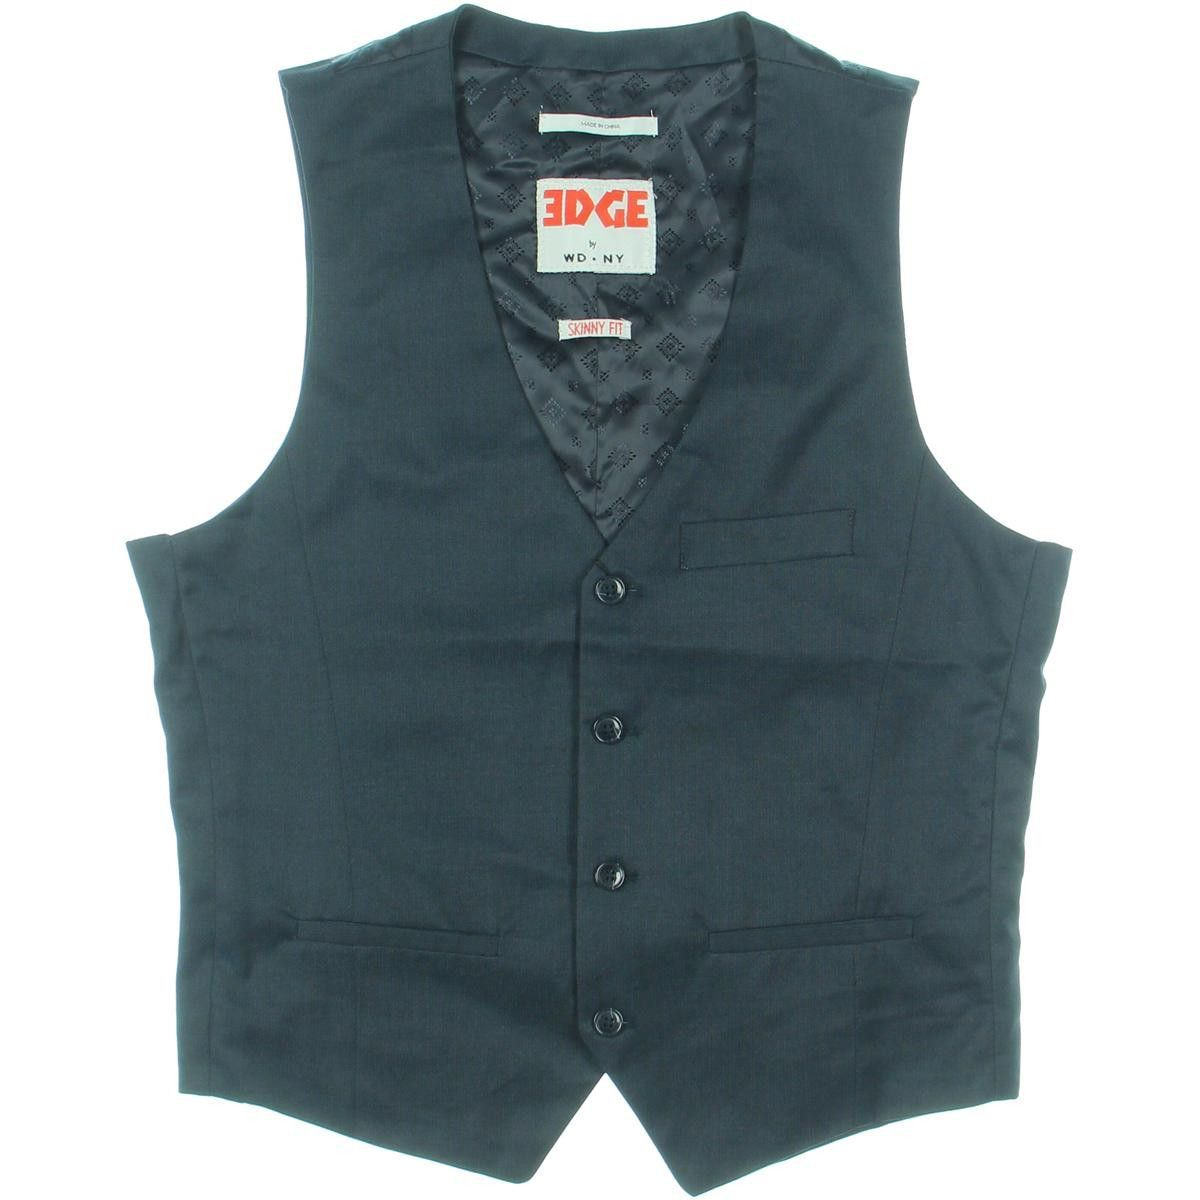 Edge by WD-NY Mens Skinny Fit Satin Suit Vest